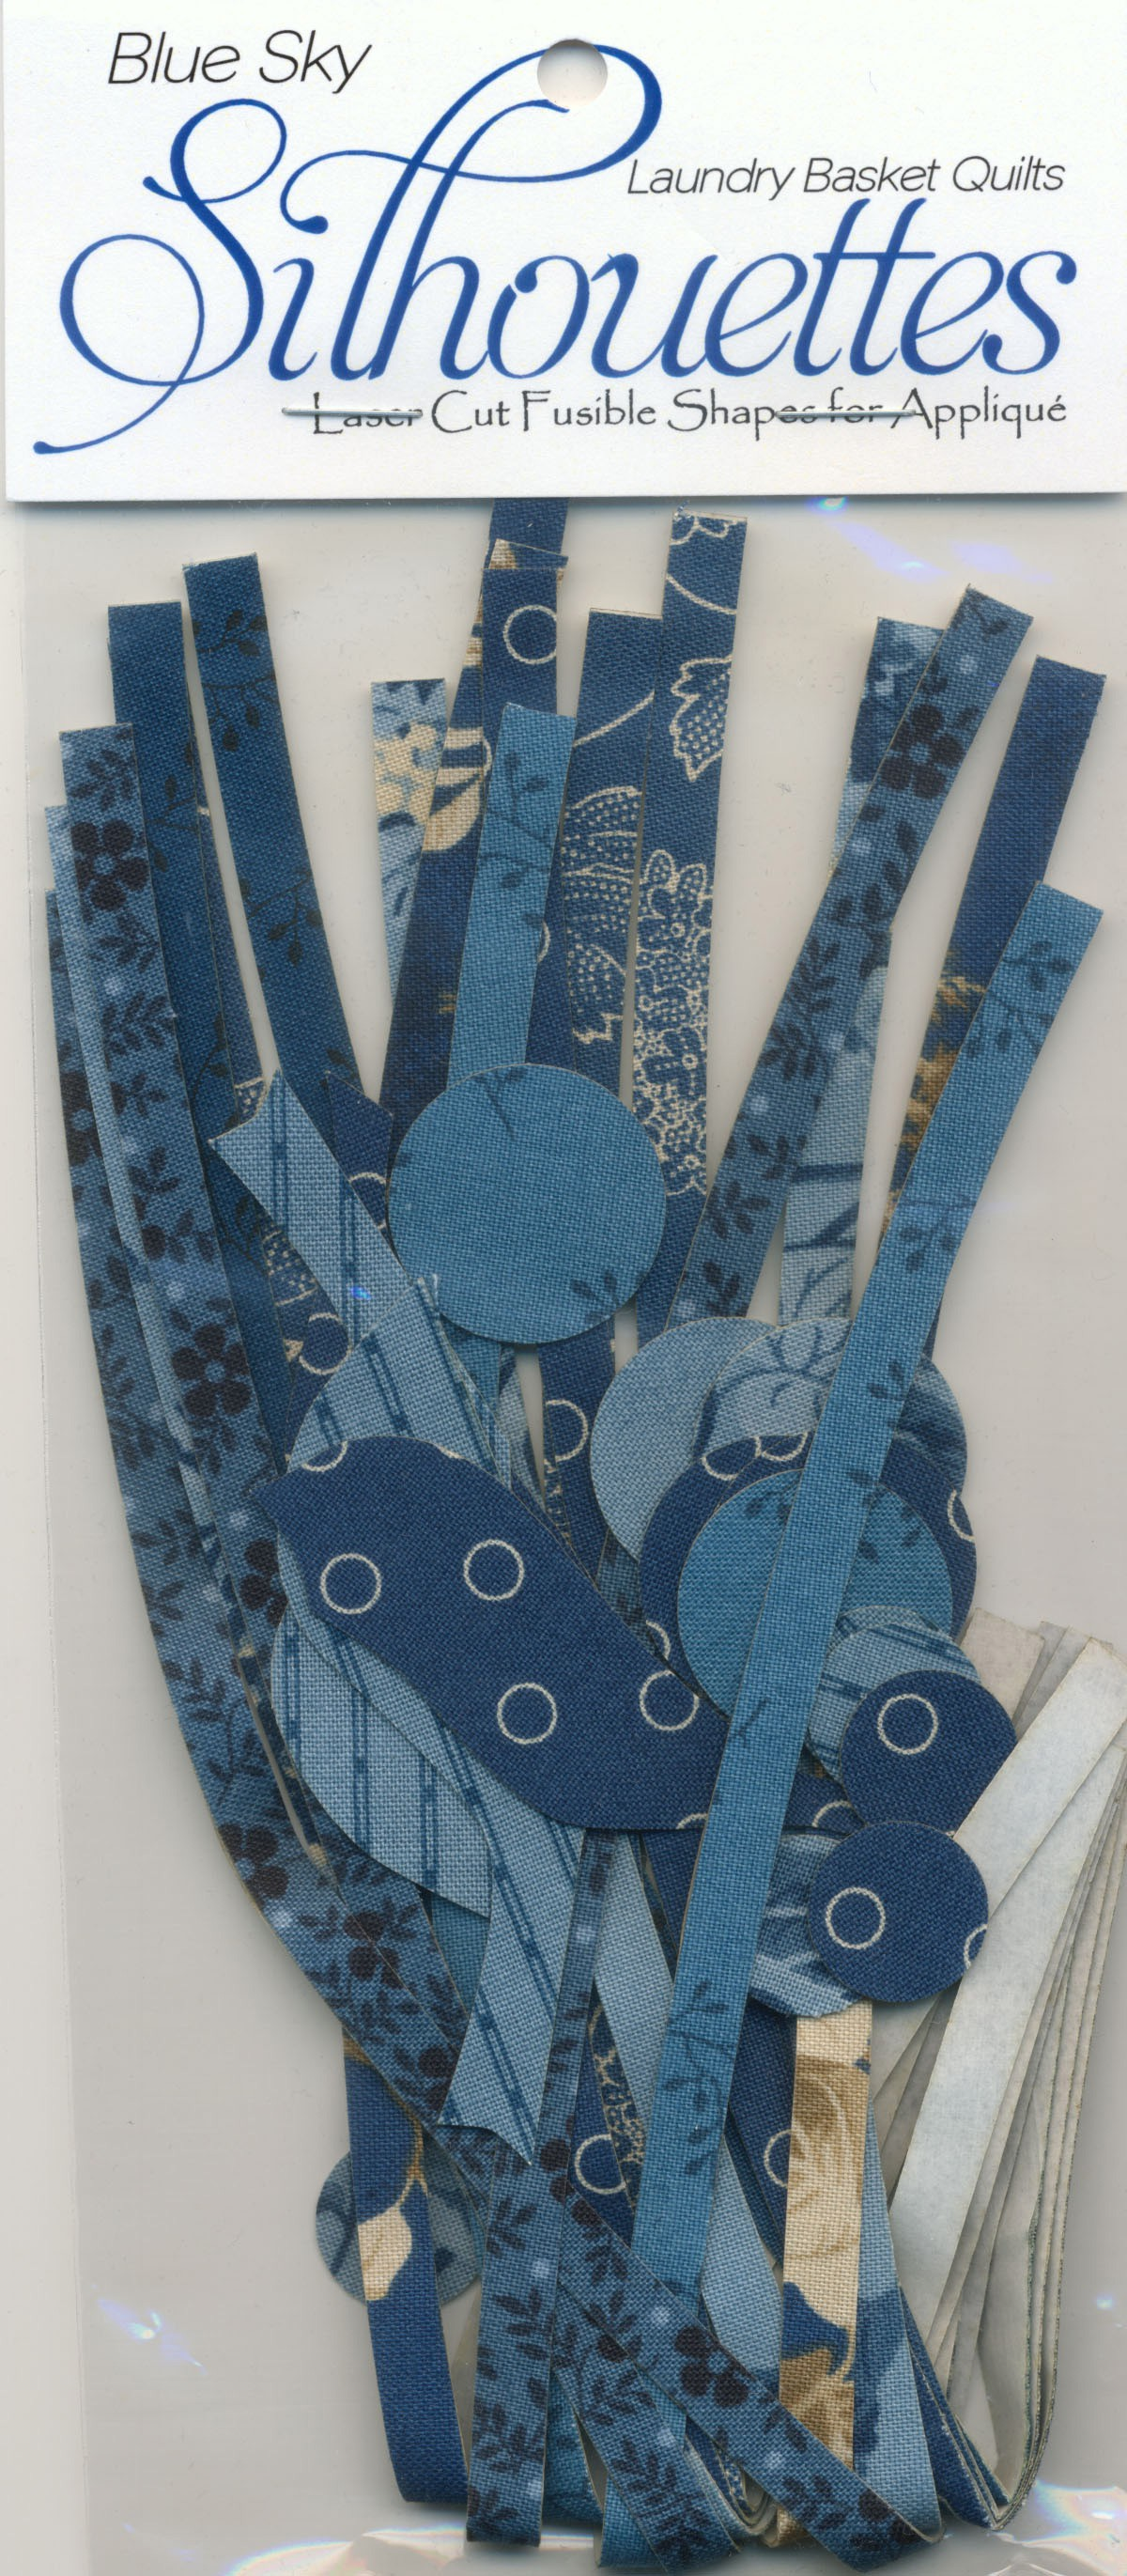 Reaching Blue Sky Appliques Silhouettes Laundry Basket Quilts